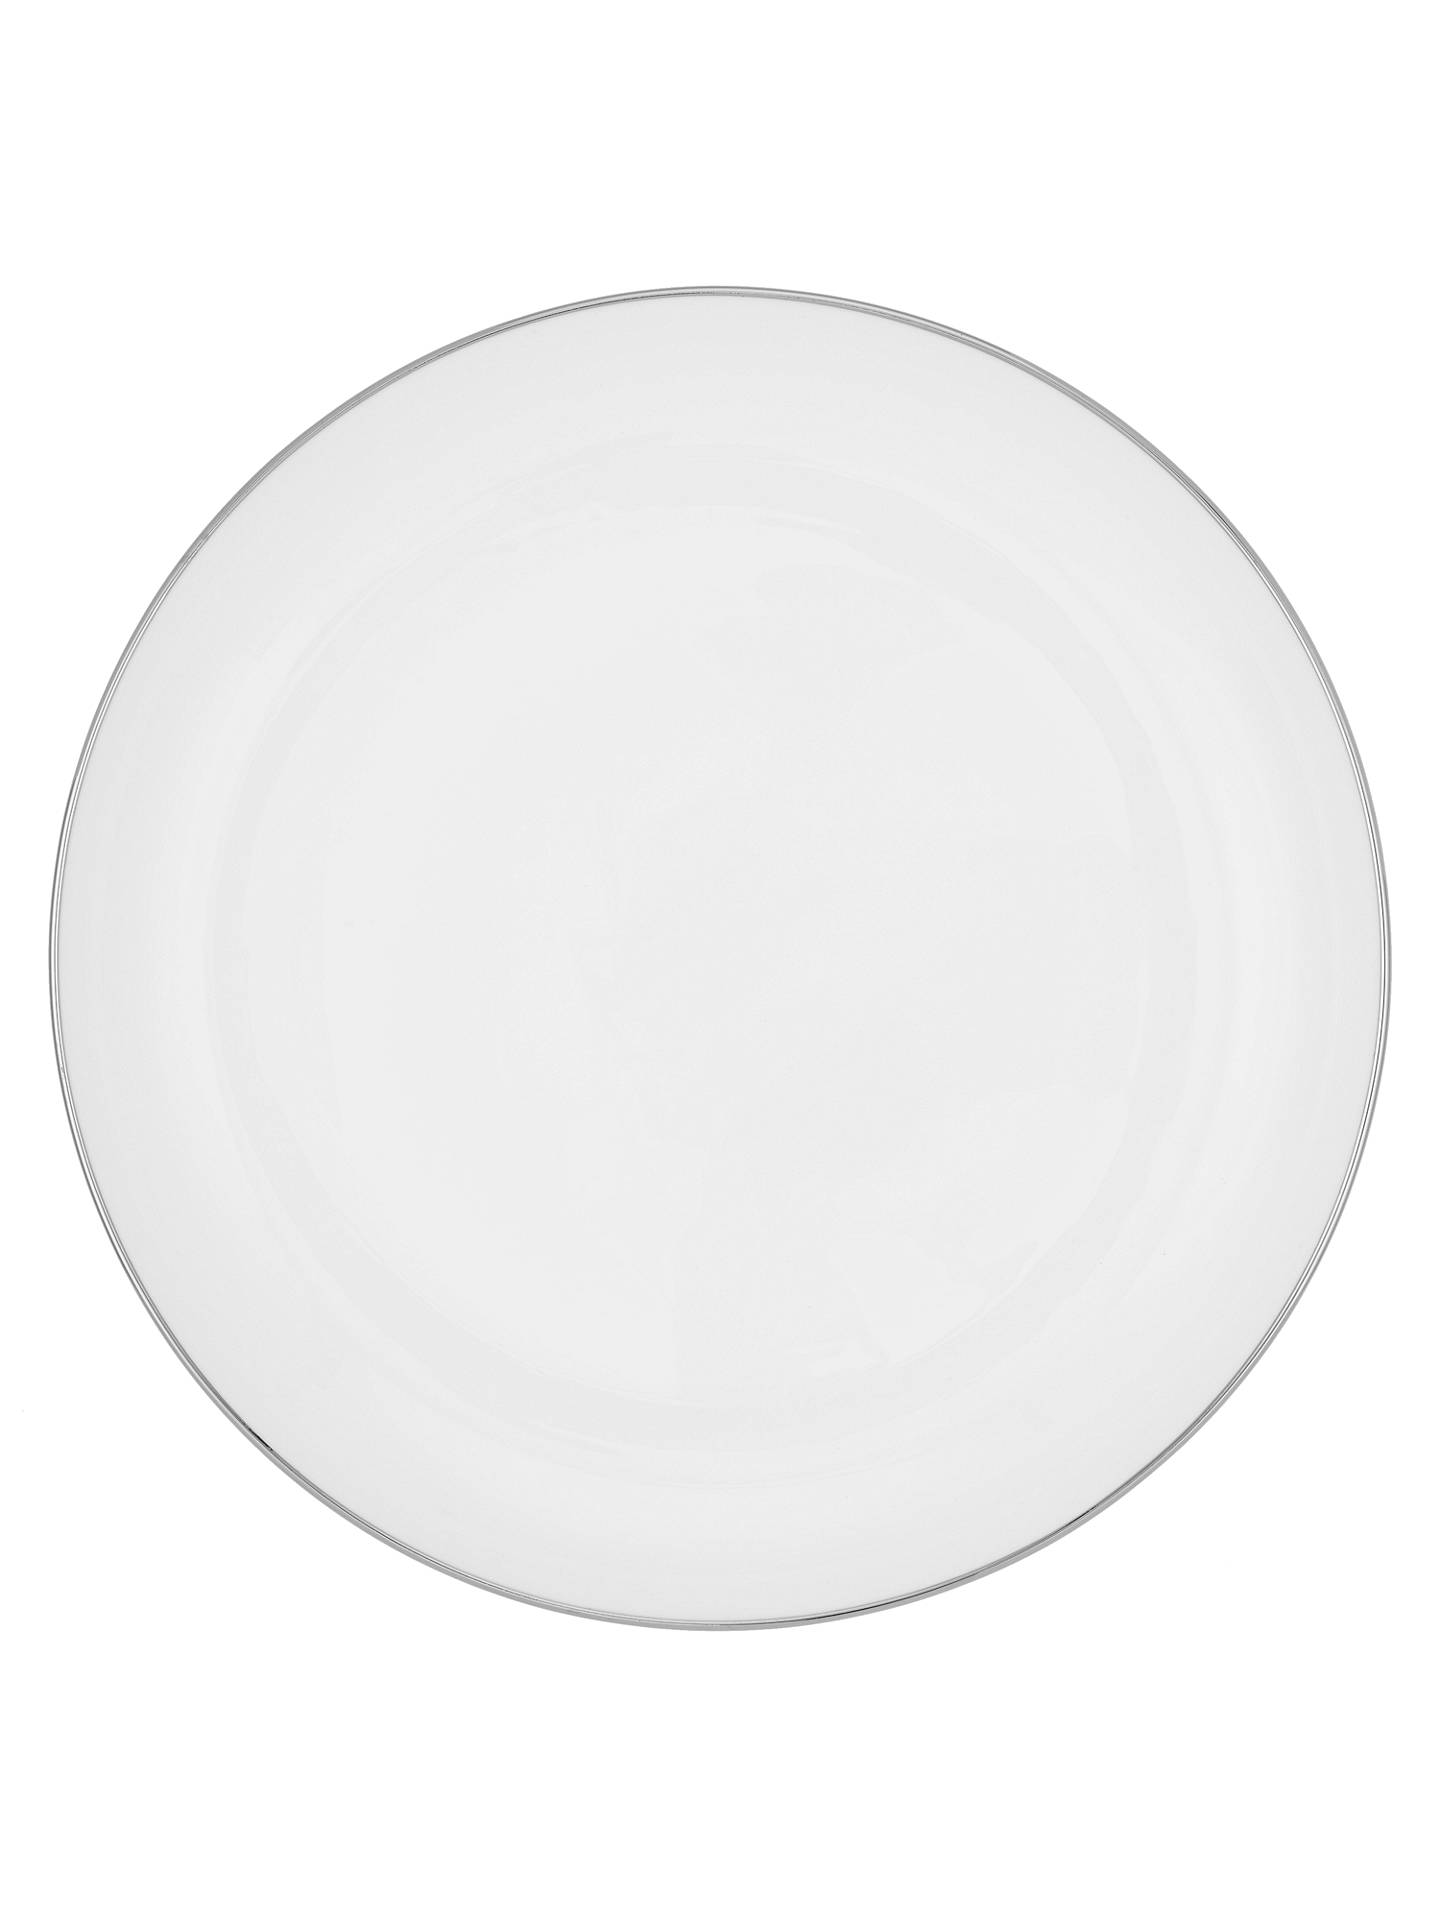 BuyJohn Lewis & Partners Contour Platinum Bone China Side Plate, 18cm, White/Silver Online at johnlewis.com